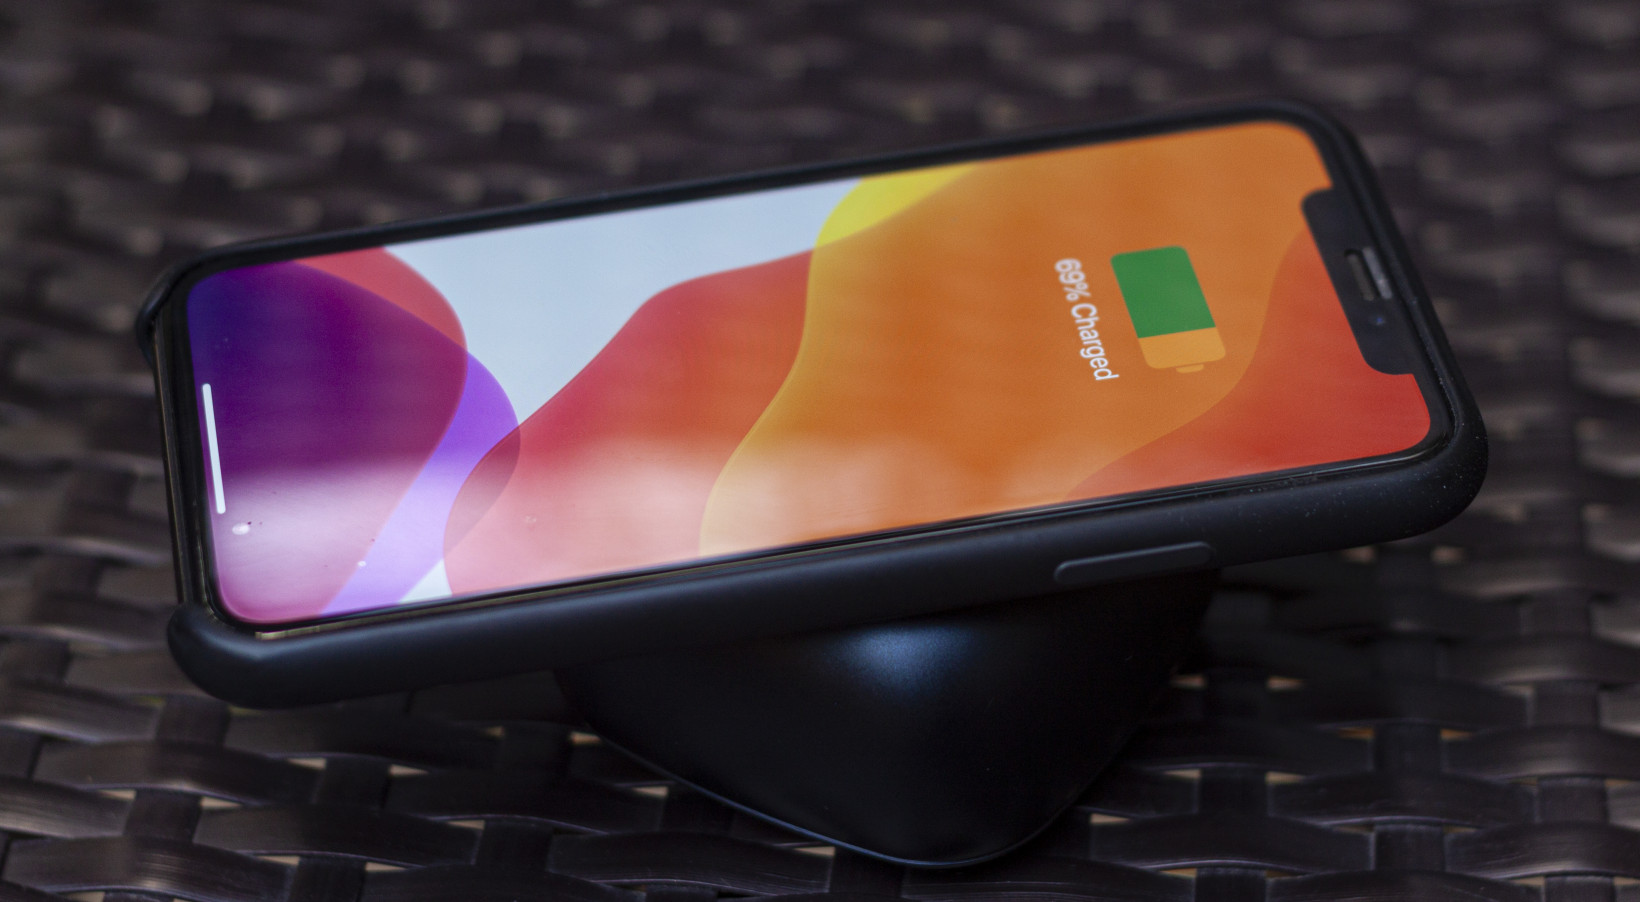 The PaMu Slide case can wirelessly charge your Qi-compatible phone